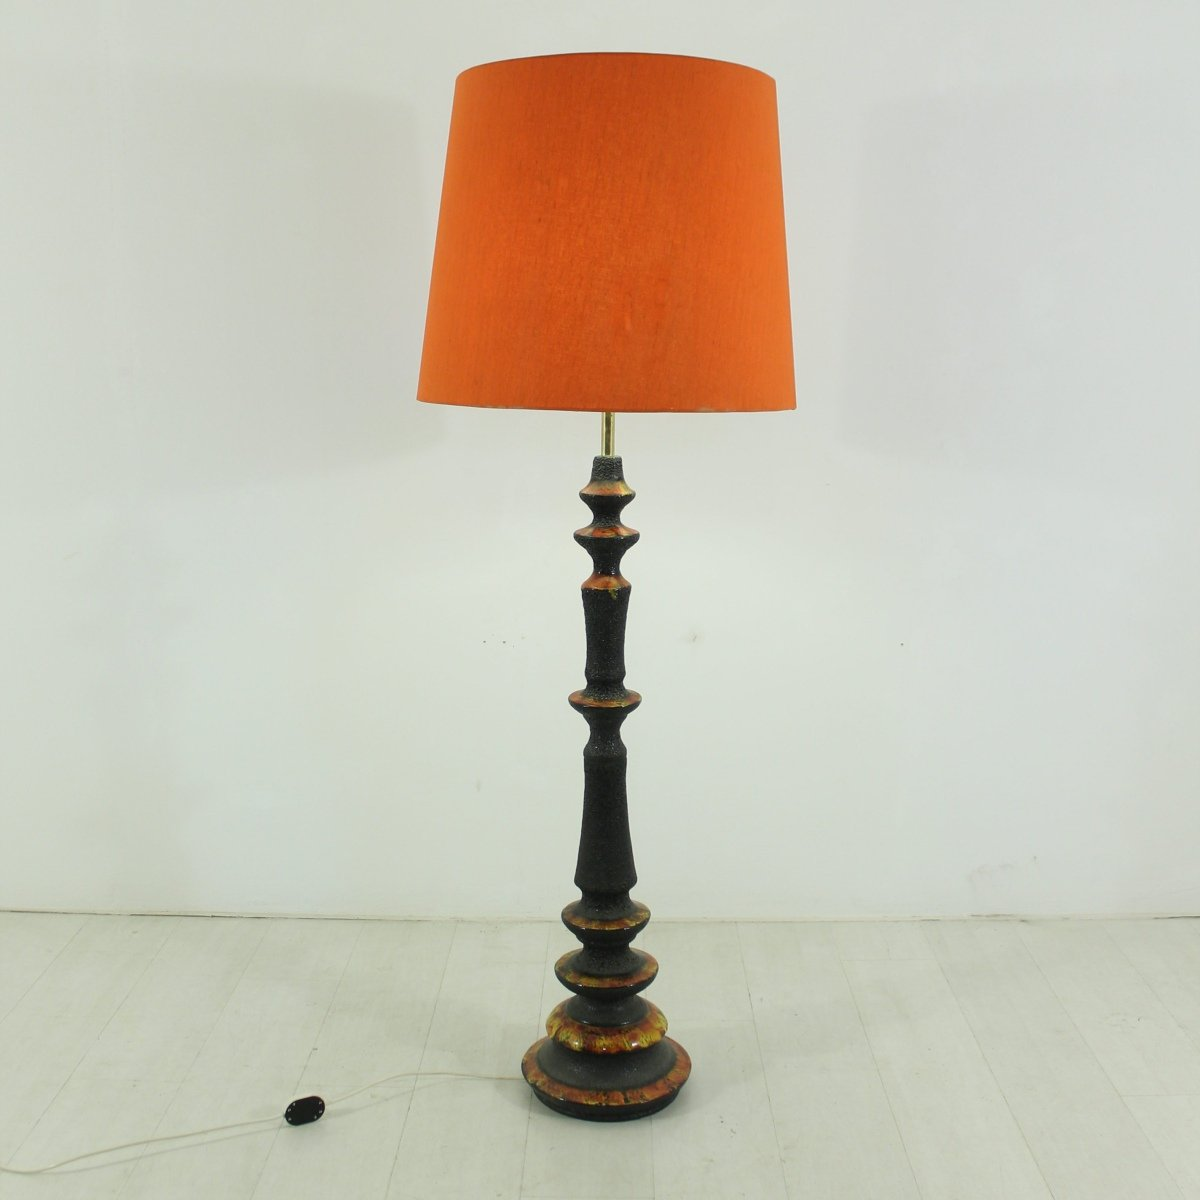 West German Floor Lamp, 1970s for sale at Pamono